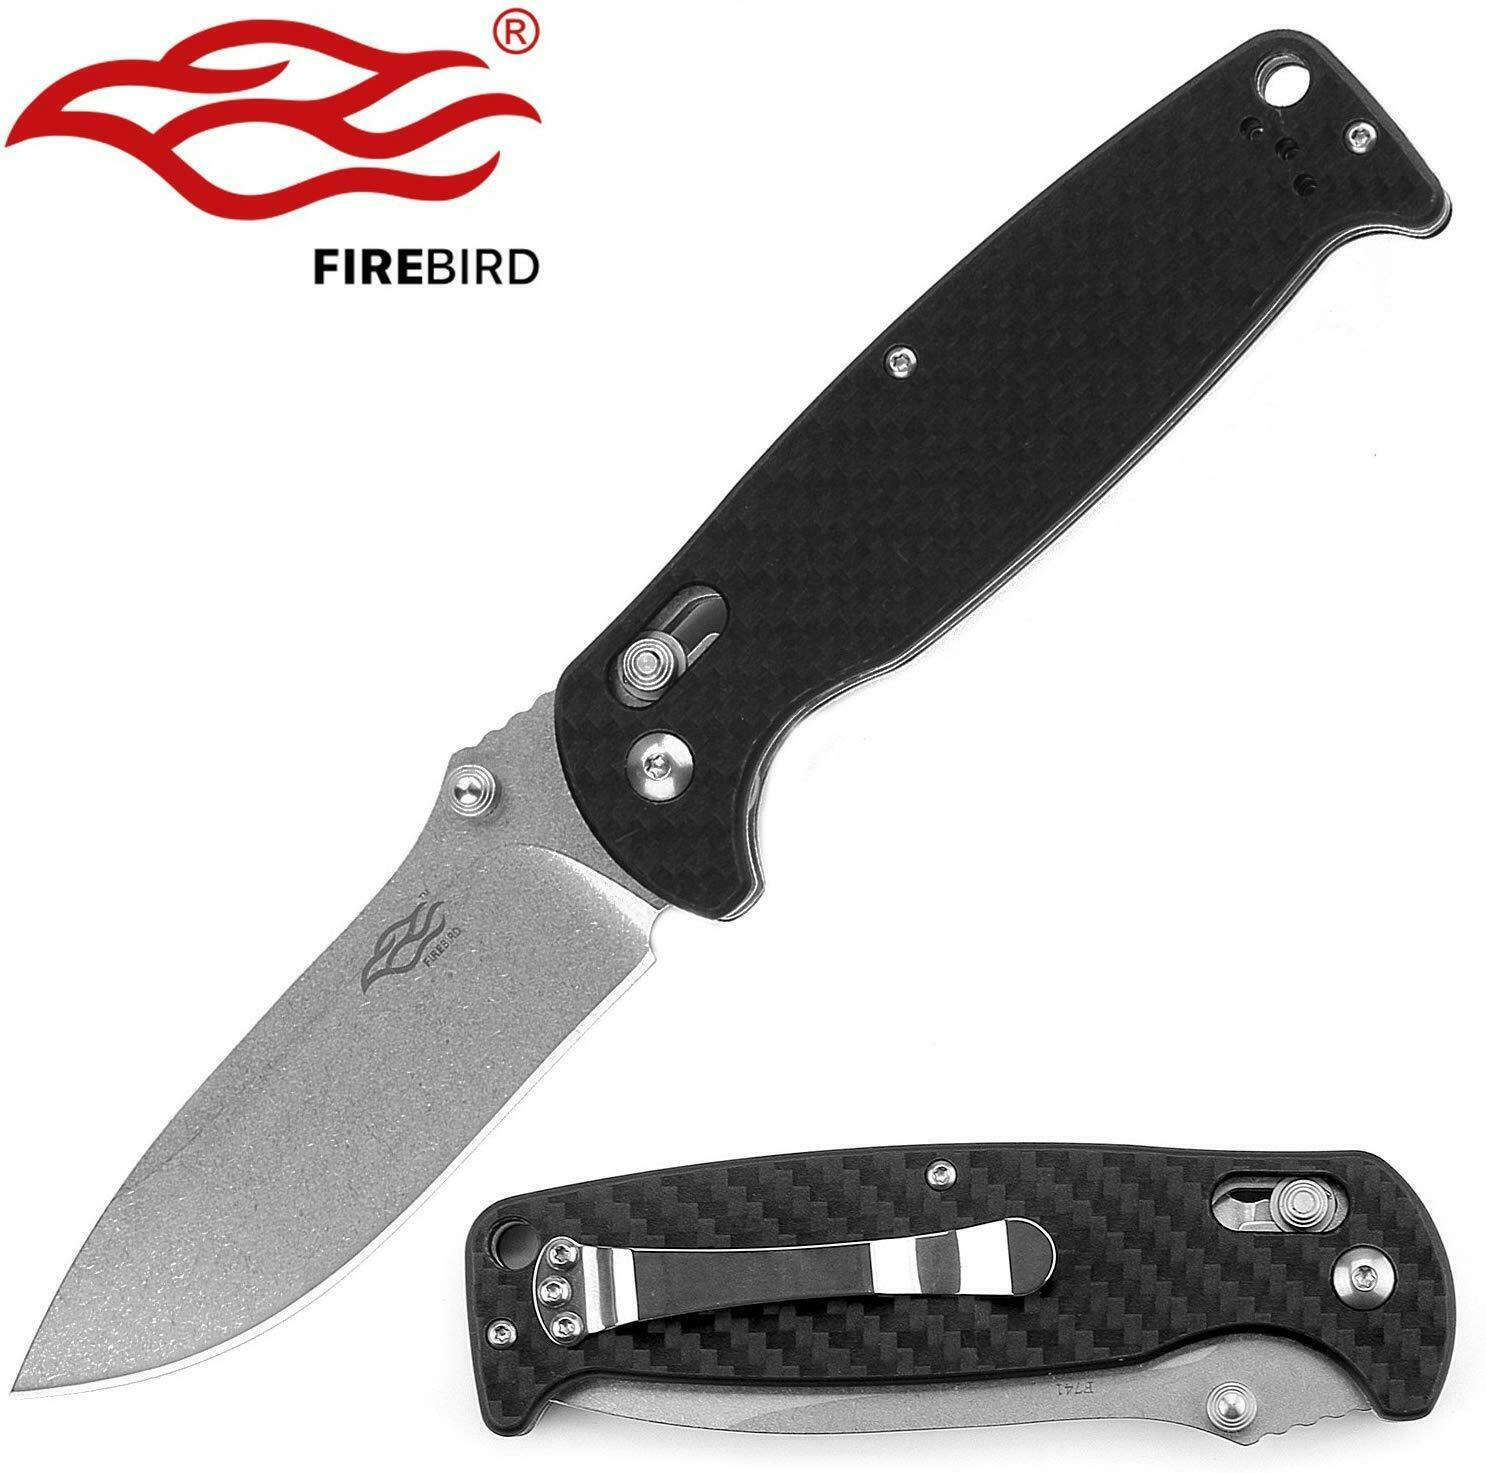 Ganzo G7412-CF Carbon Fiber 440C Steel Pocket Knife Tip-Up Carry Axis Lock EDC